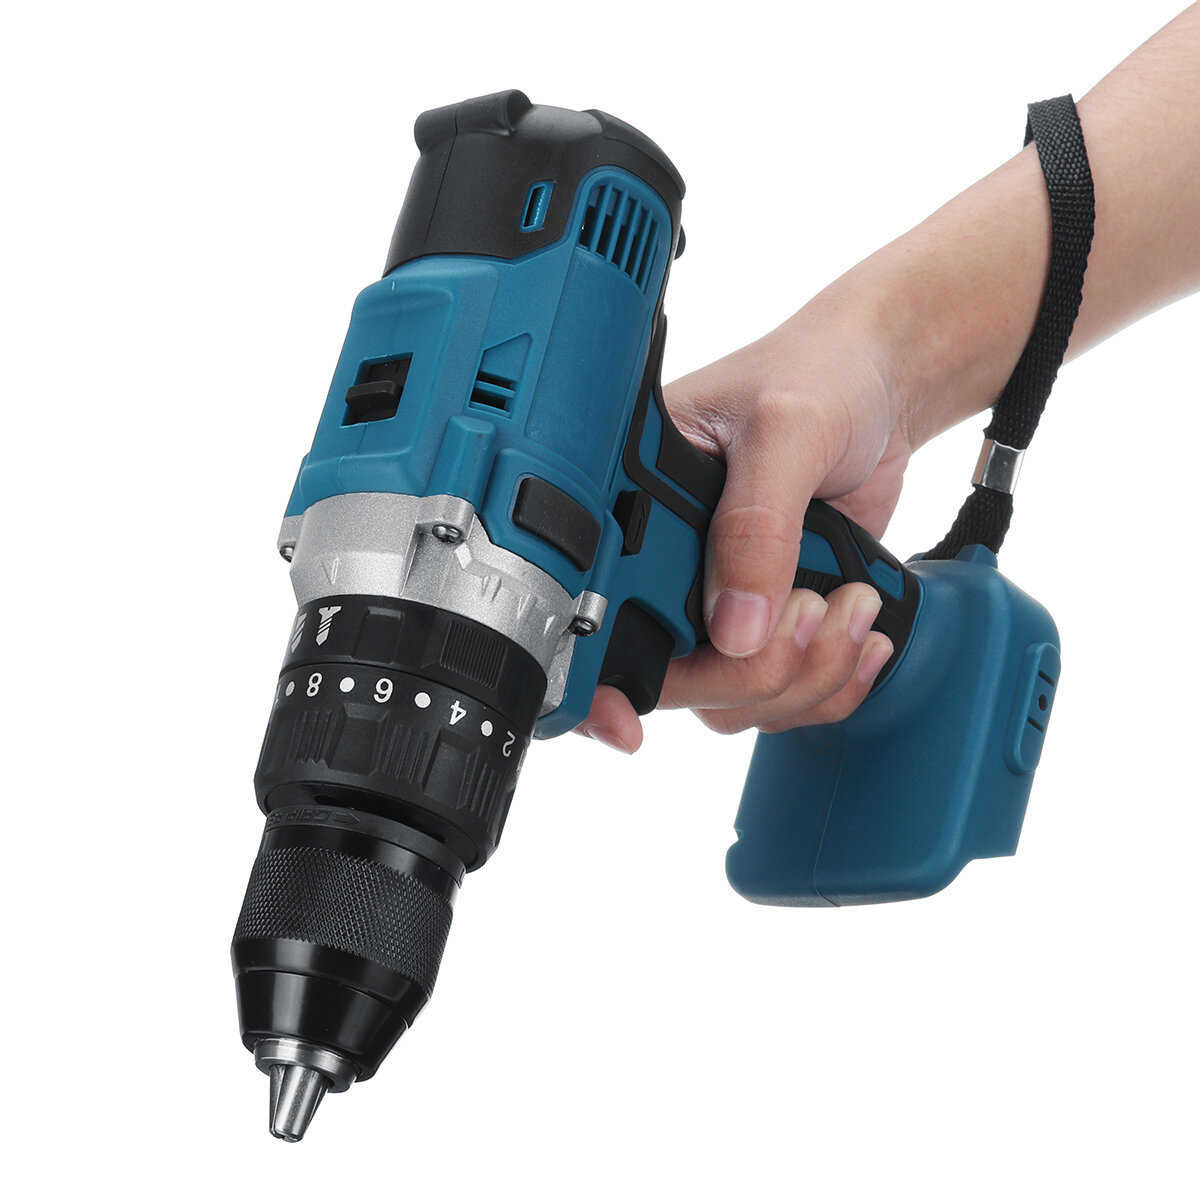 Raitool 12V/24V Lithium Battery Power Drill Cordless Rechargeable 2 Speed Electric Drill - 11